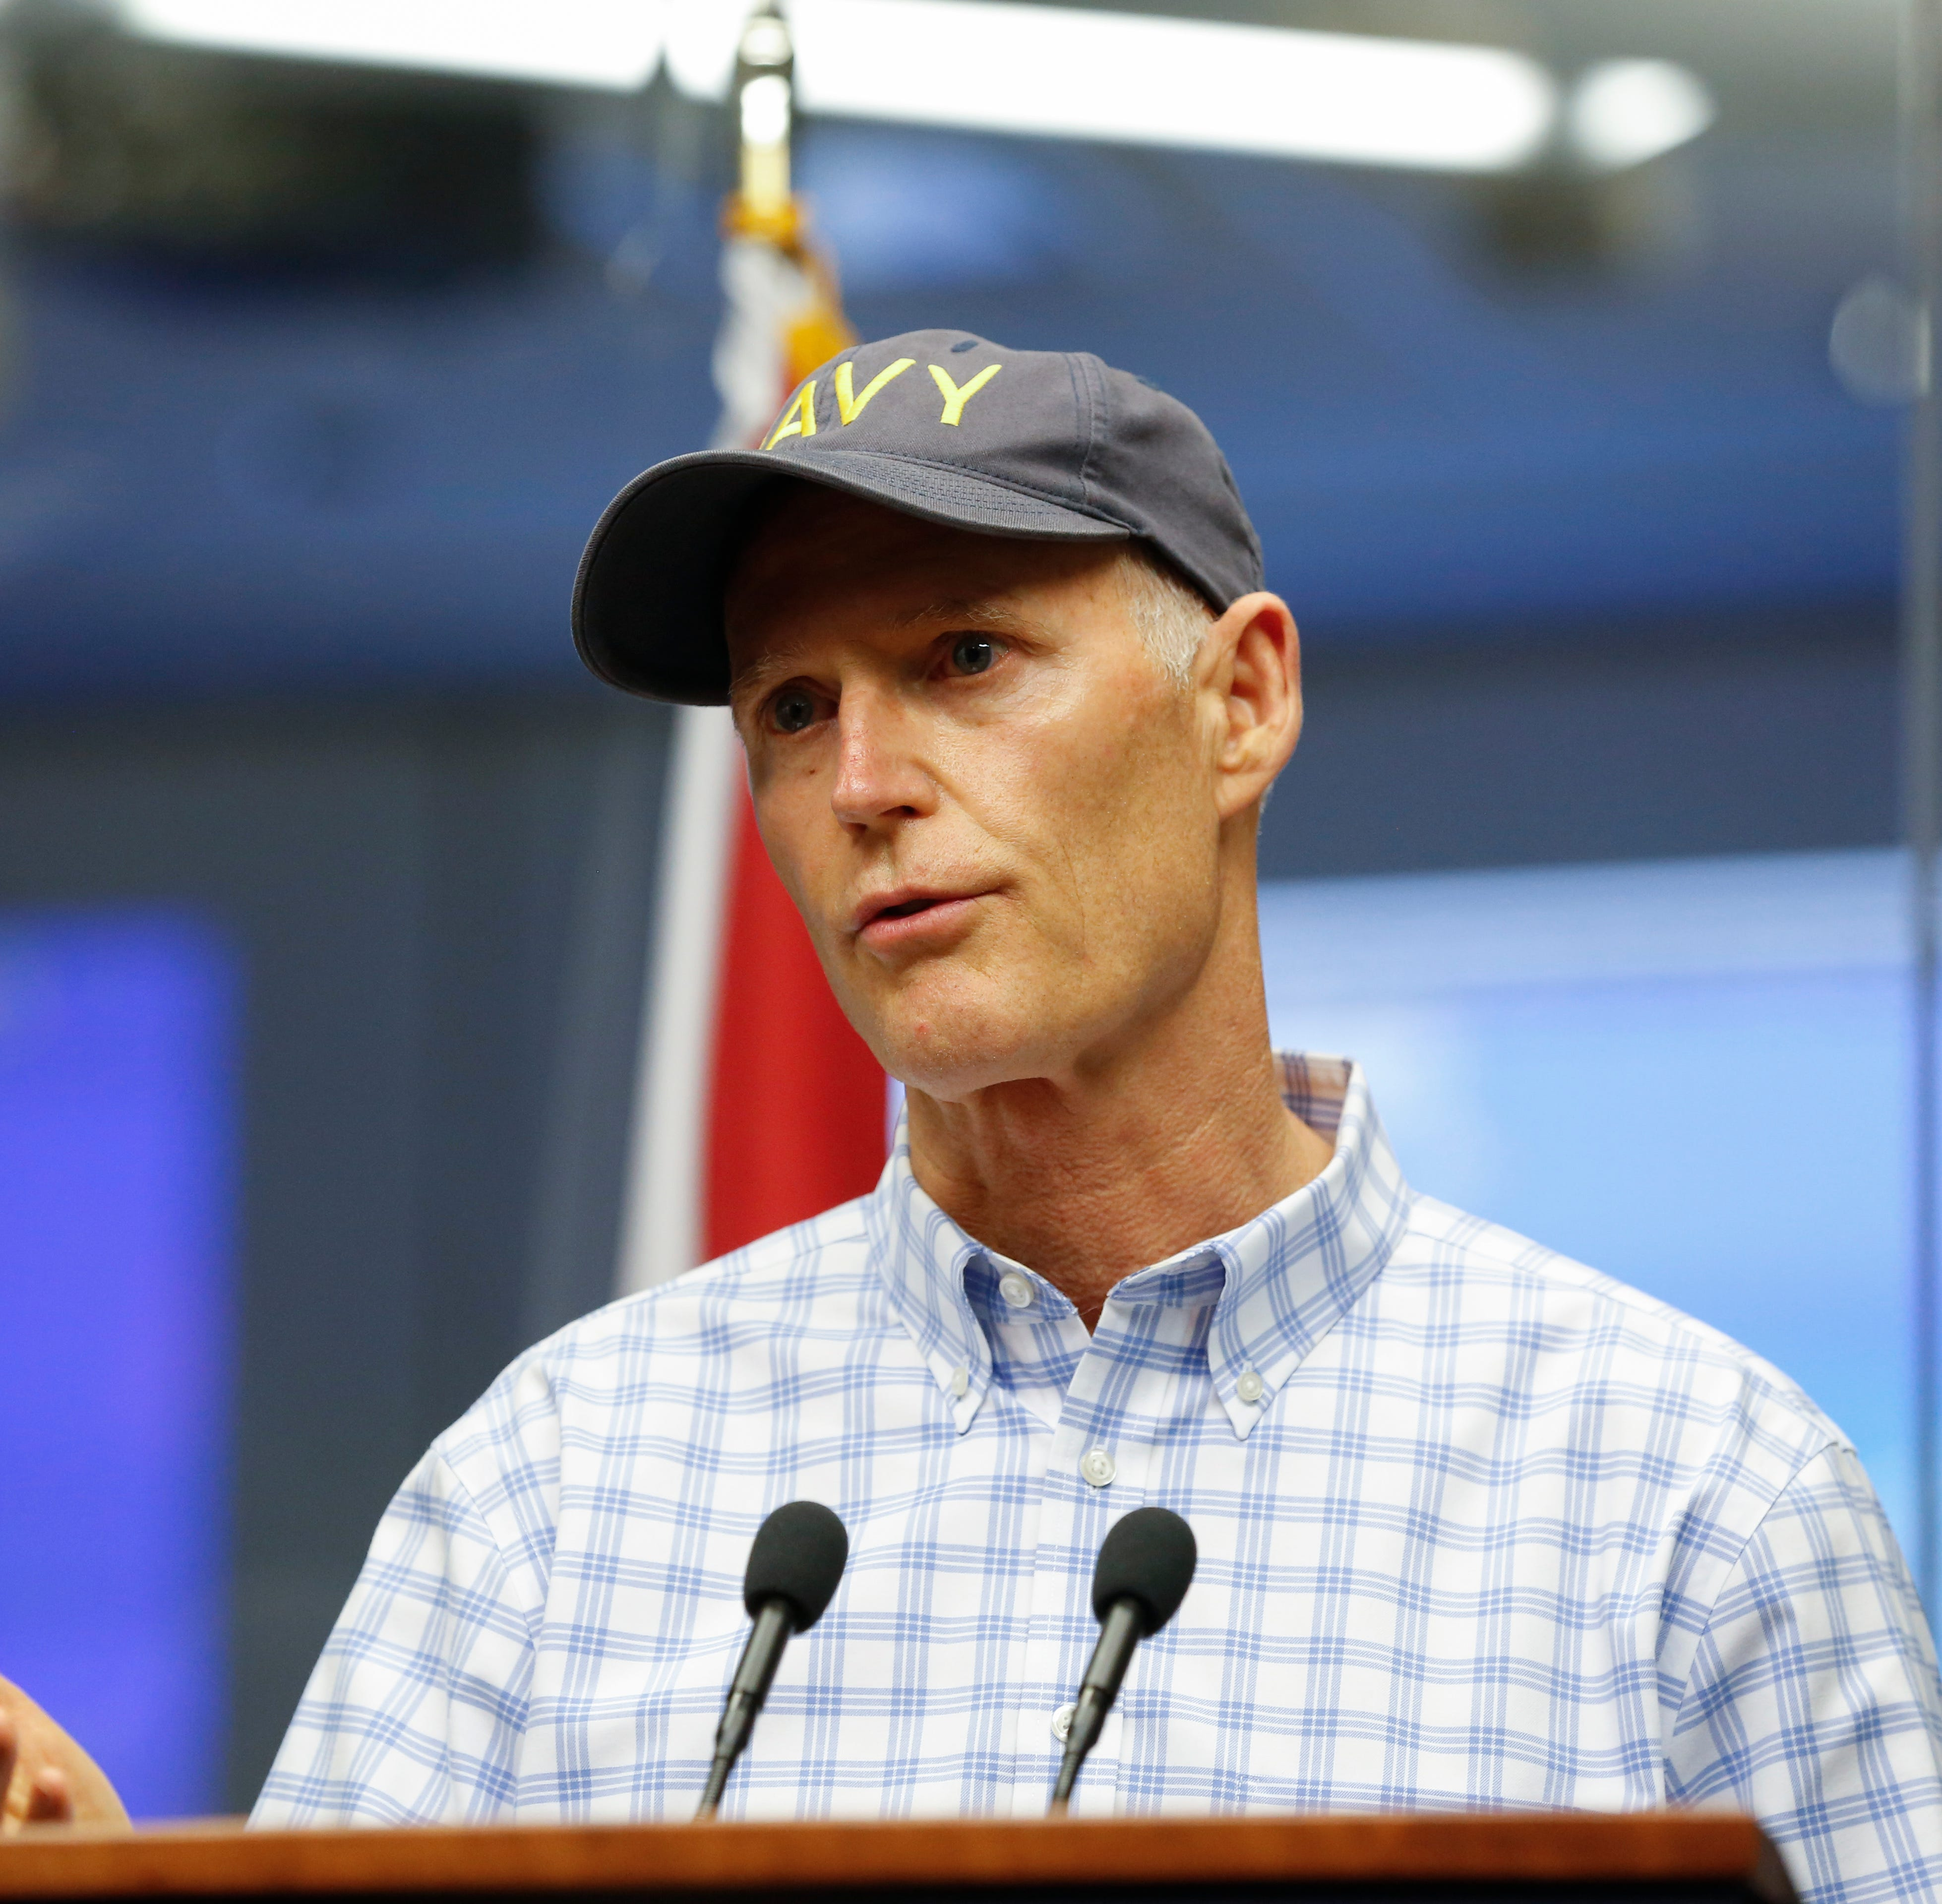 Senator Rick Scott has penchant for partisanship, self-promotion | Paula Dockery